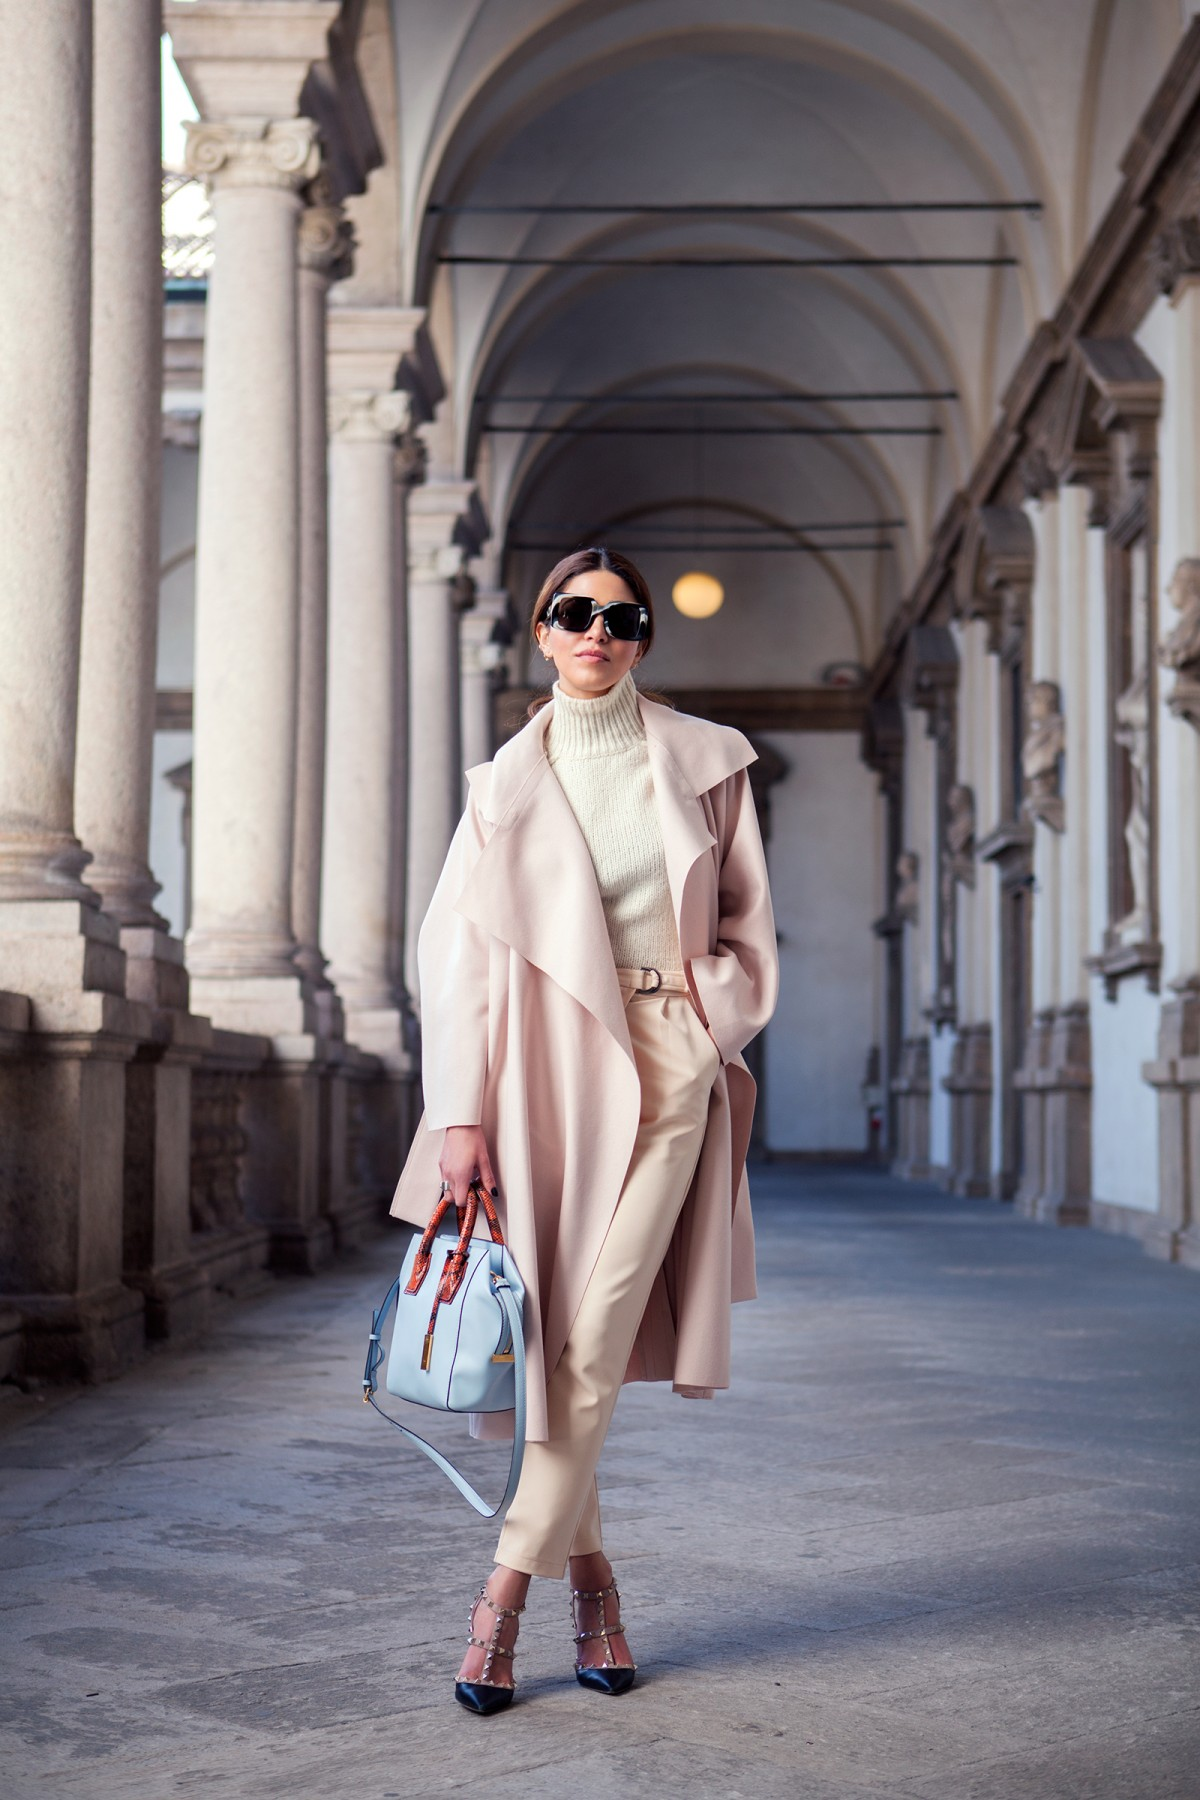 Negin Mirsalehi is wearing blush pink Avelon coat